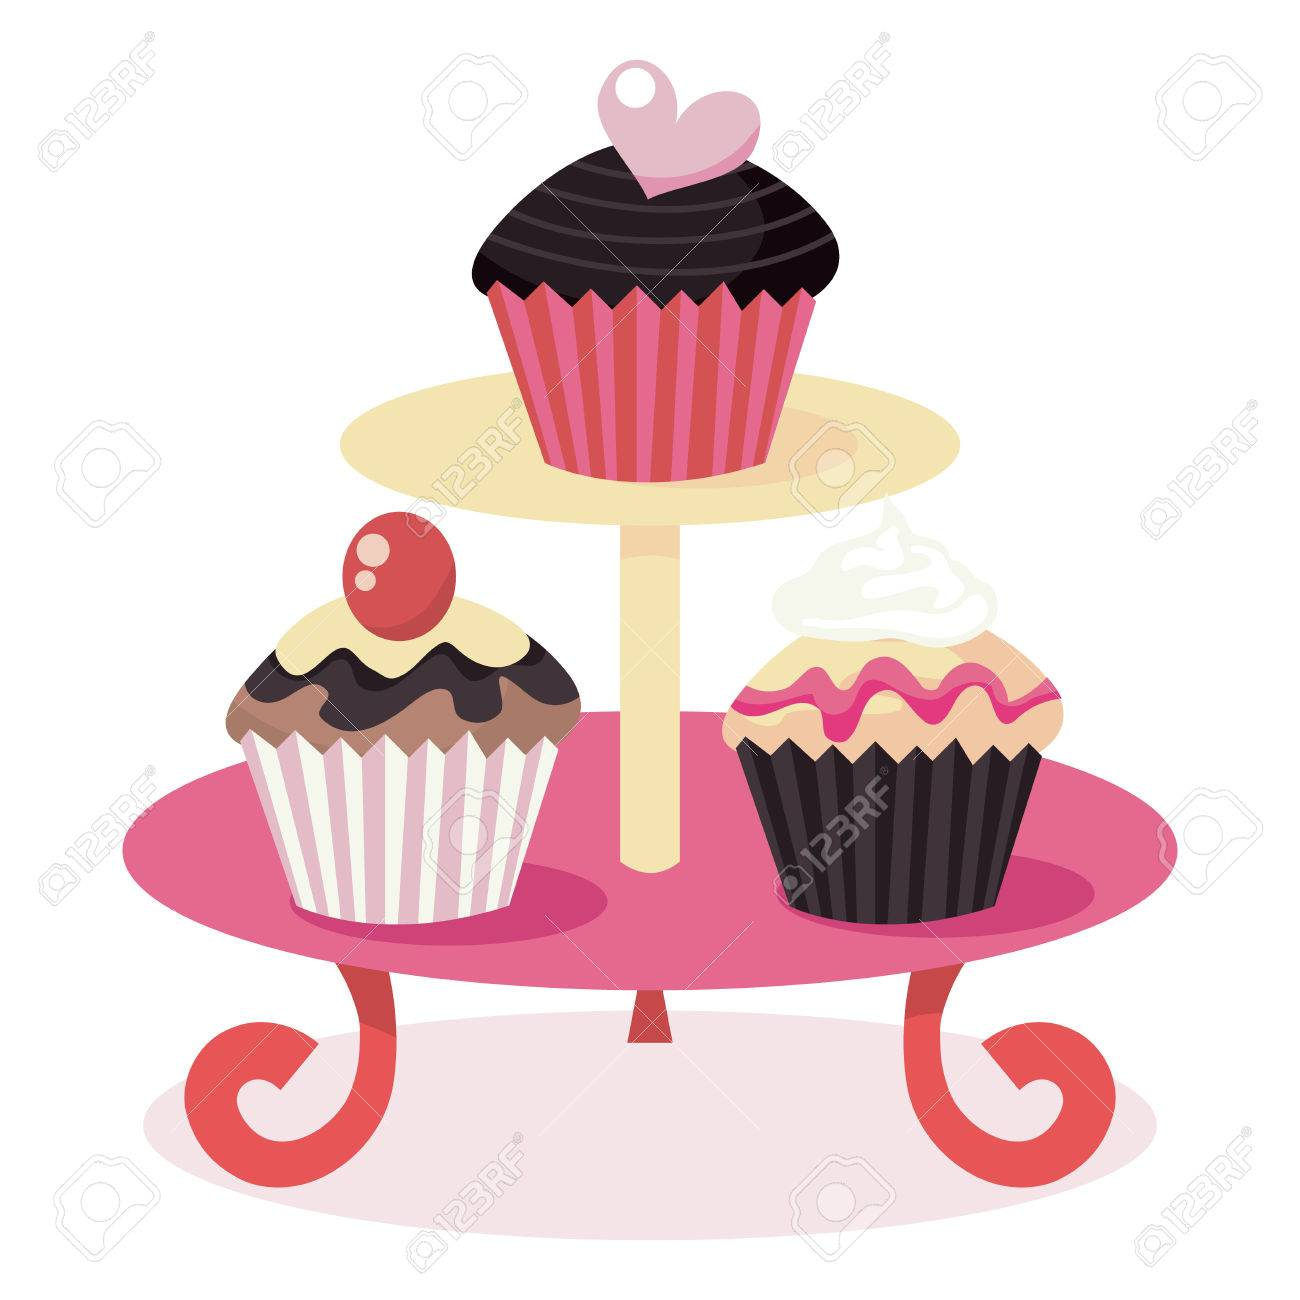 A Vector Illustration Of Cute Cupcakes On A Cupcake Stand Royalty